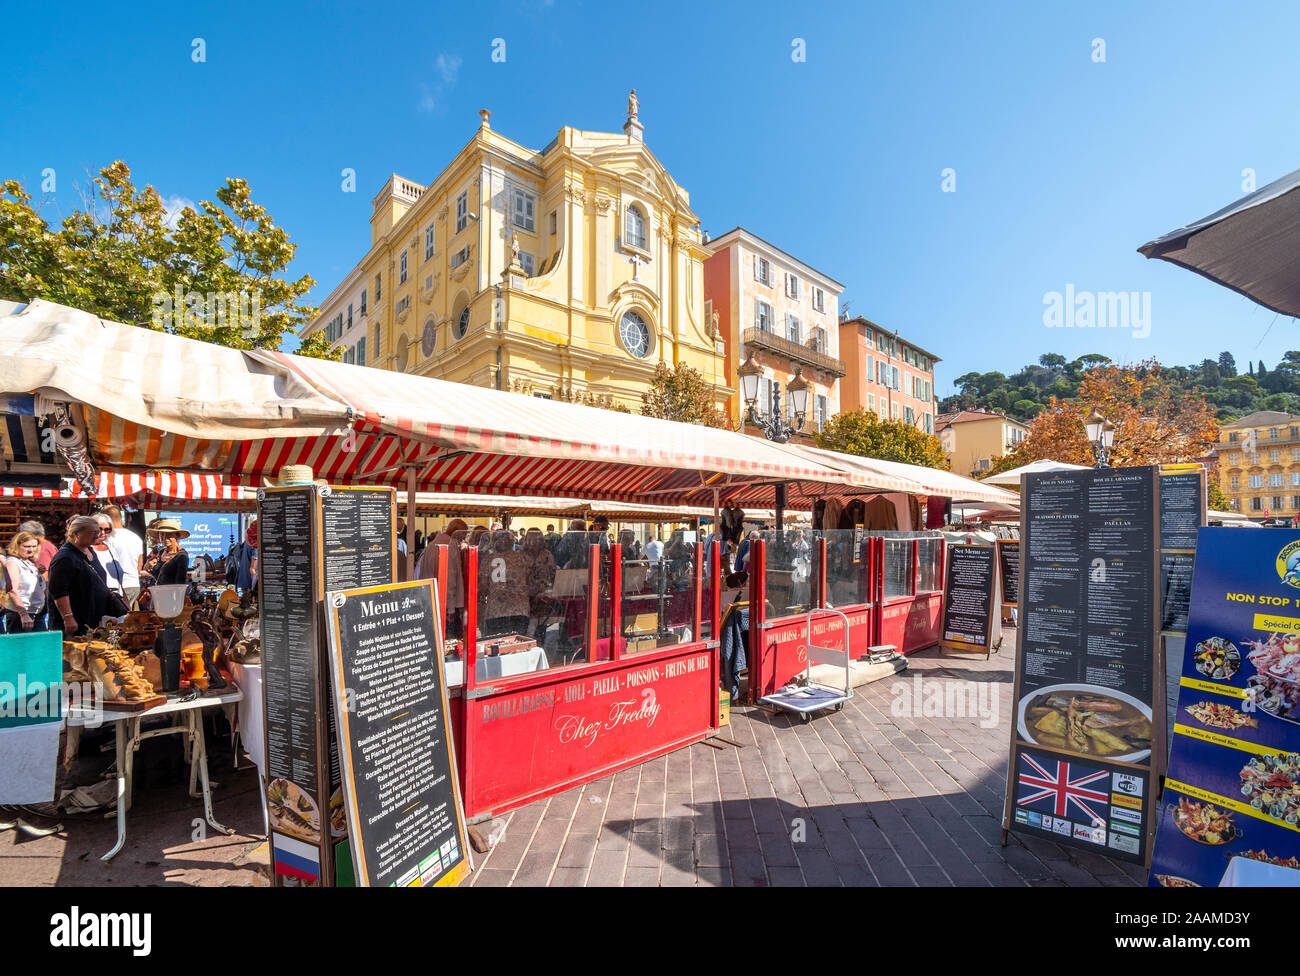 Tables with antiques and collectibles in the covered outdoor flea market alongside sidewalk cafes in the Cours Saleya market in Nice, France. Stock Photo